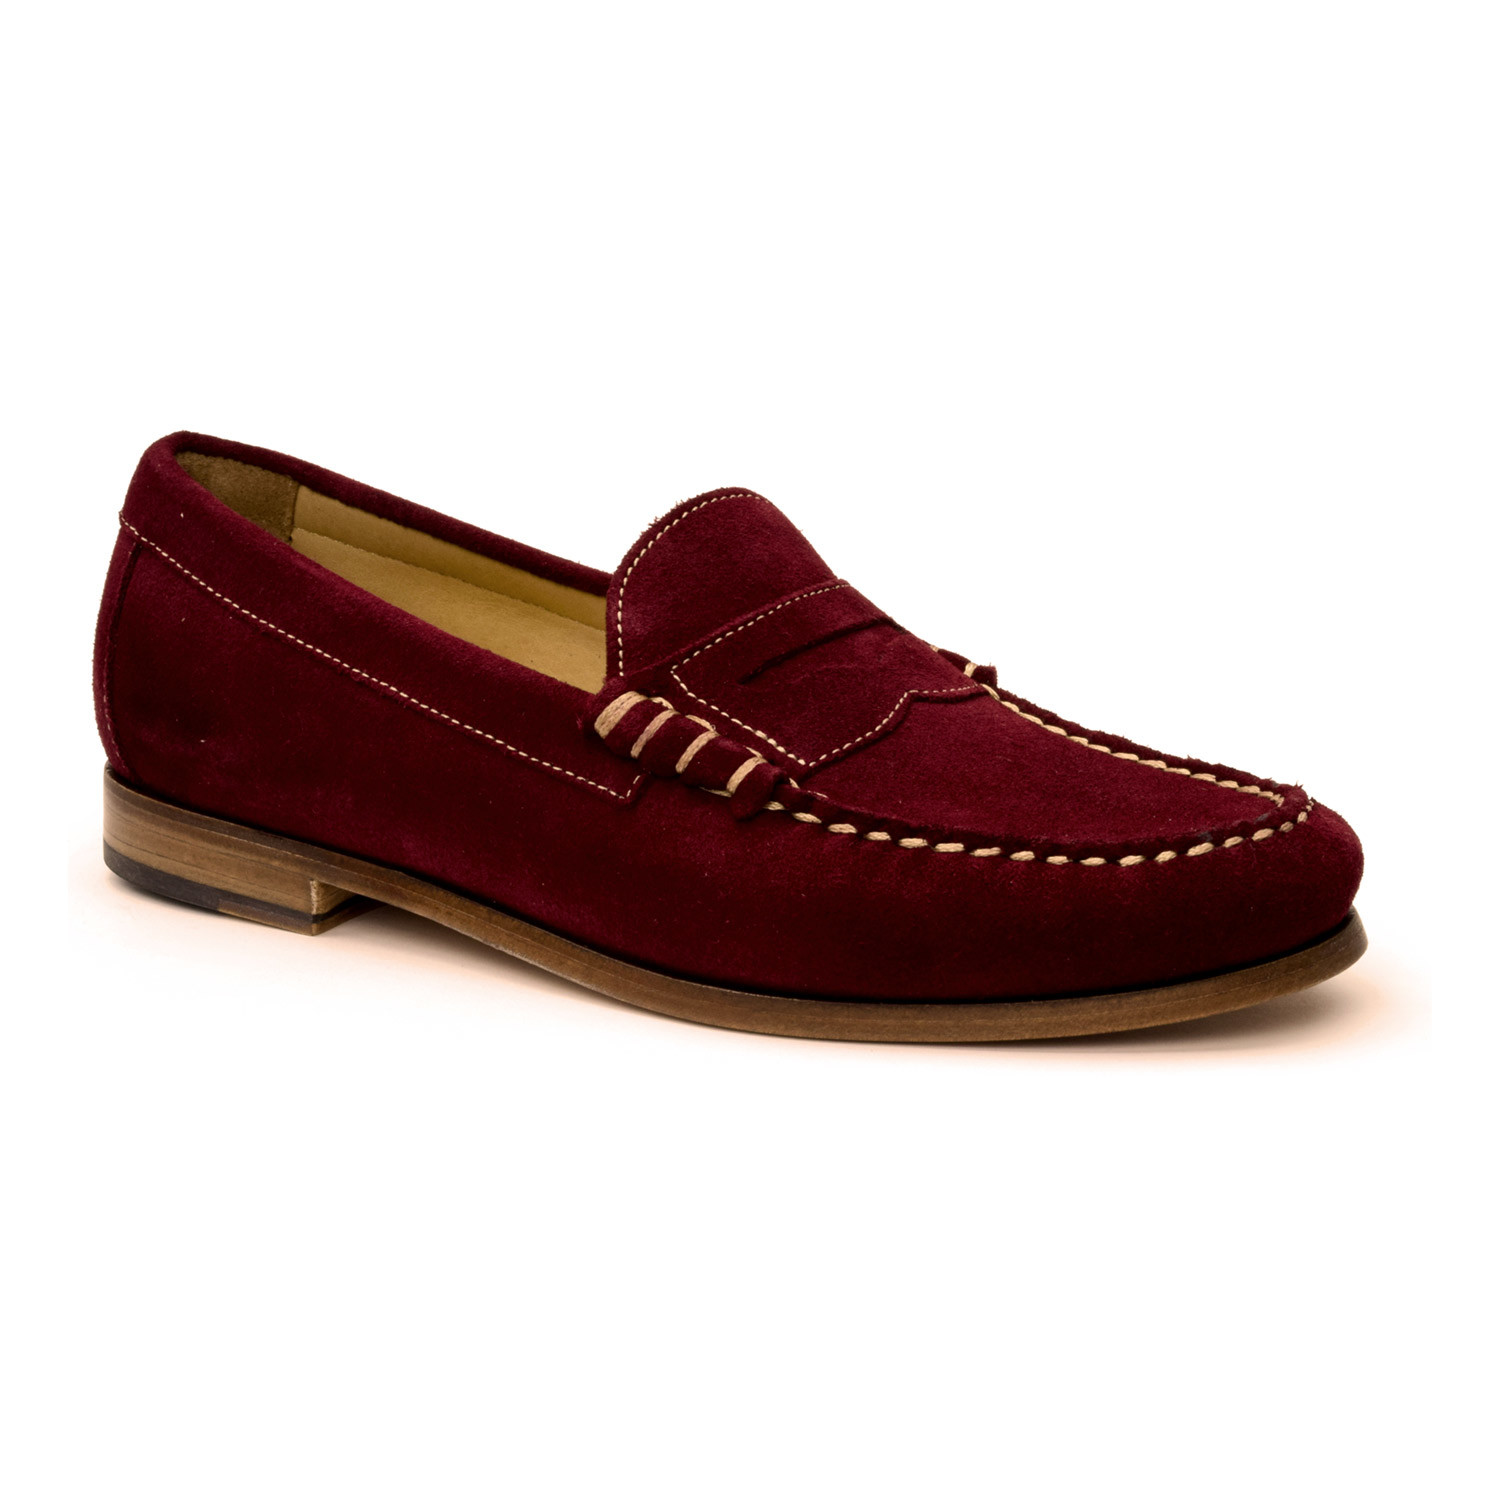 9e49dbbbe39 Drake Penny Loafer    Bordo (US  8.5) - Warfield   Grand - Touch of ...